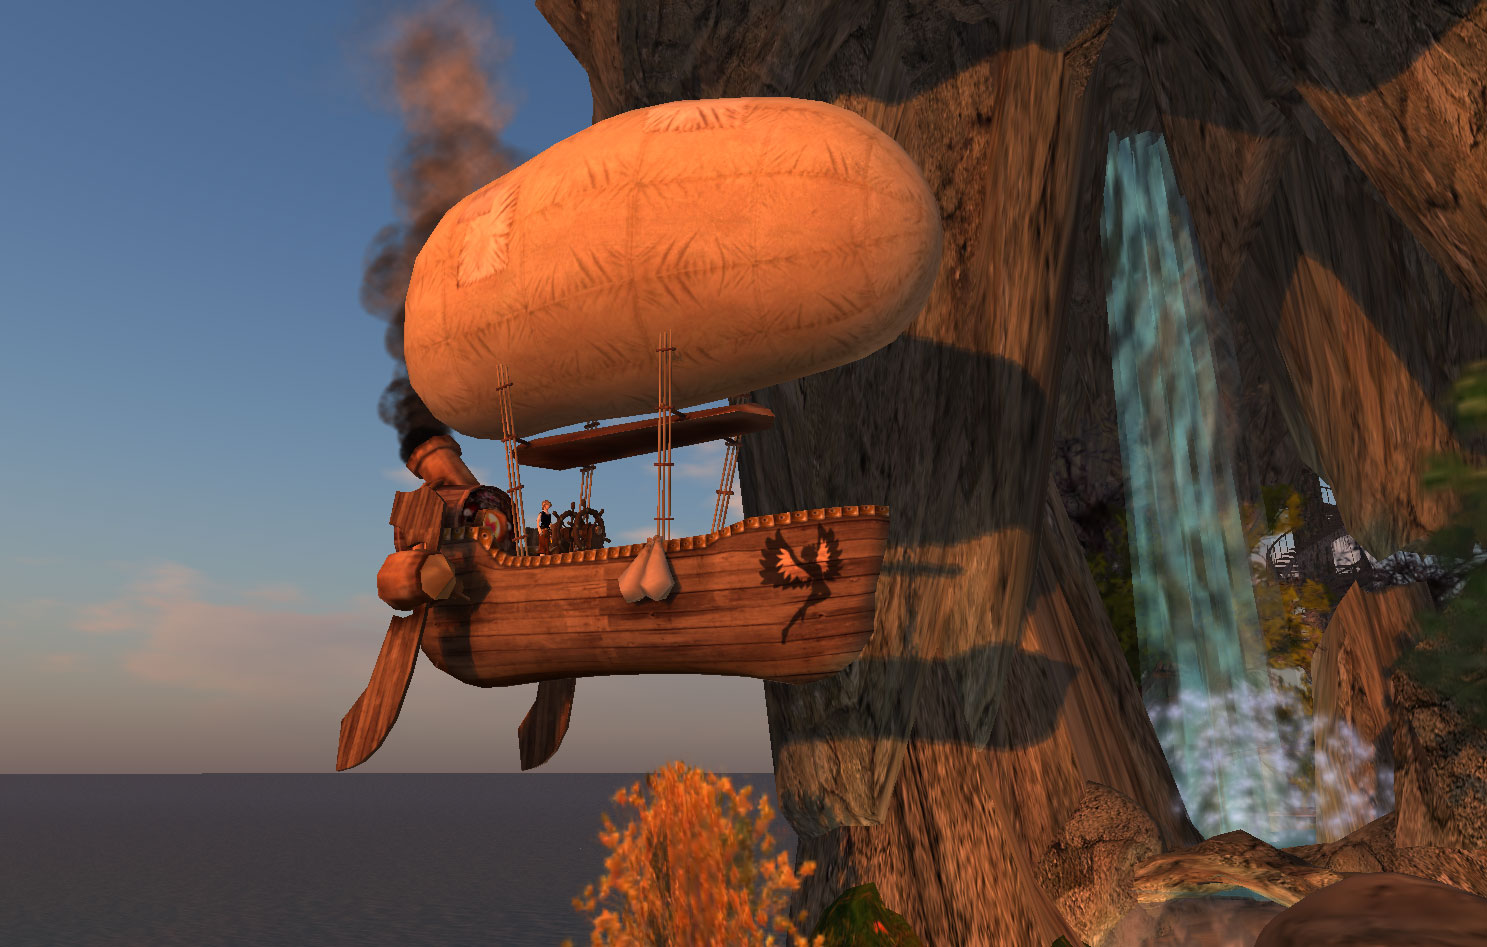 Airship_on_maingrid.jpg